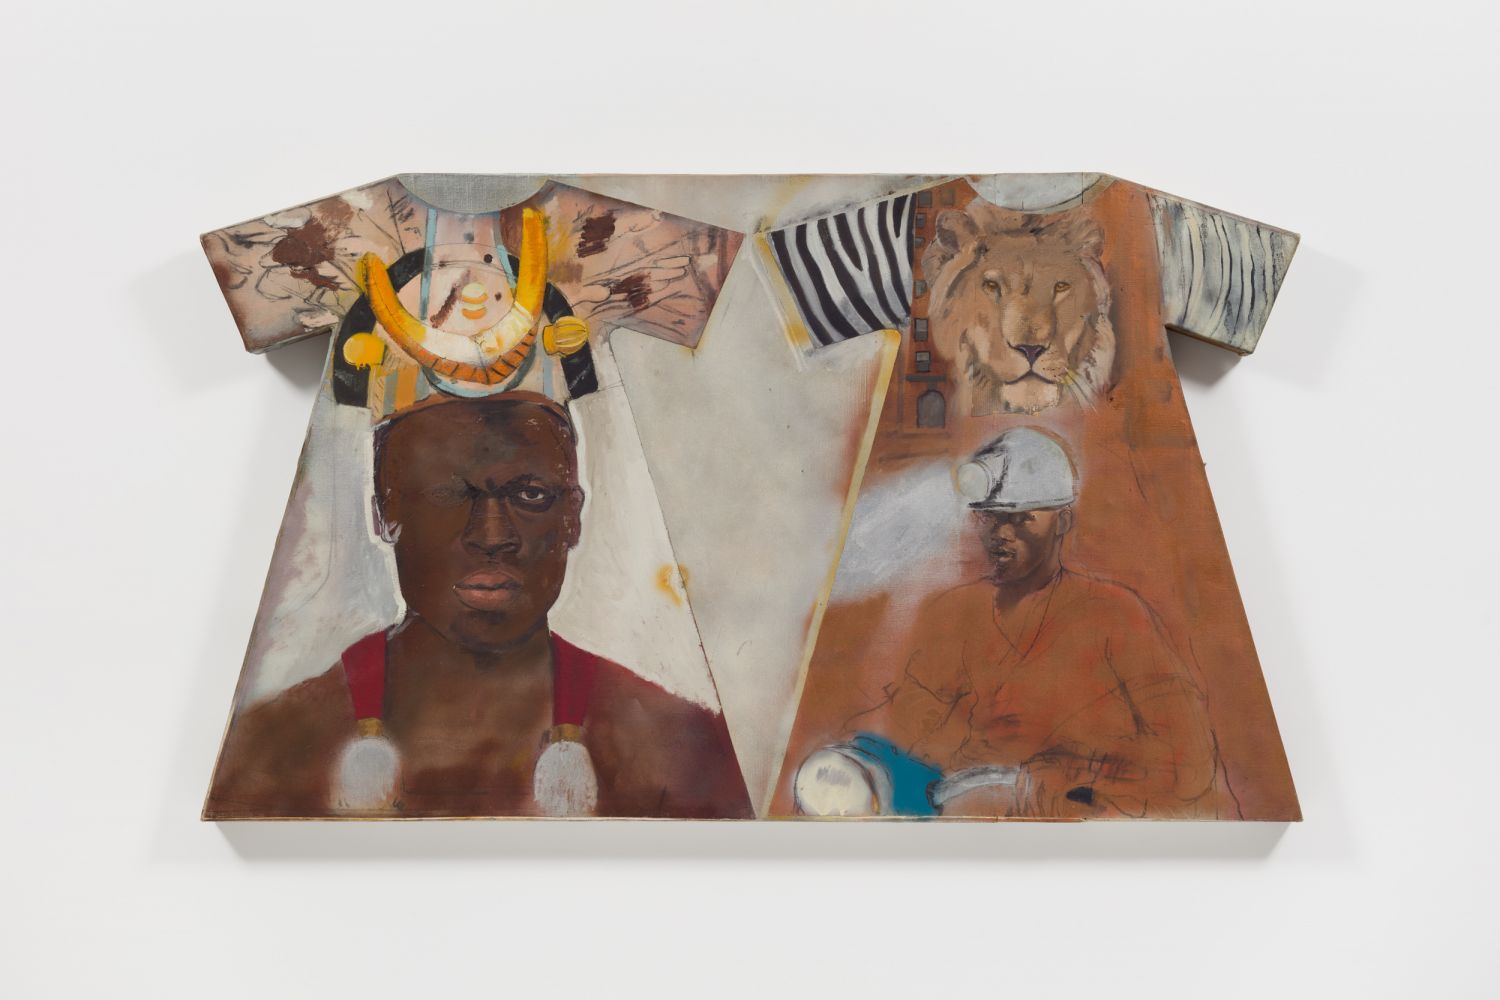 Oil and collage on canvas and wood construction by Larry Rivers featuring a the outline of two dresses filled with a figure and texturing; one with an animal motif and lion, the other with abstraction